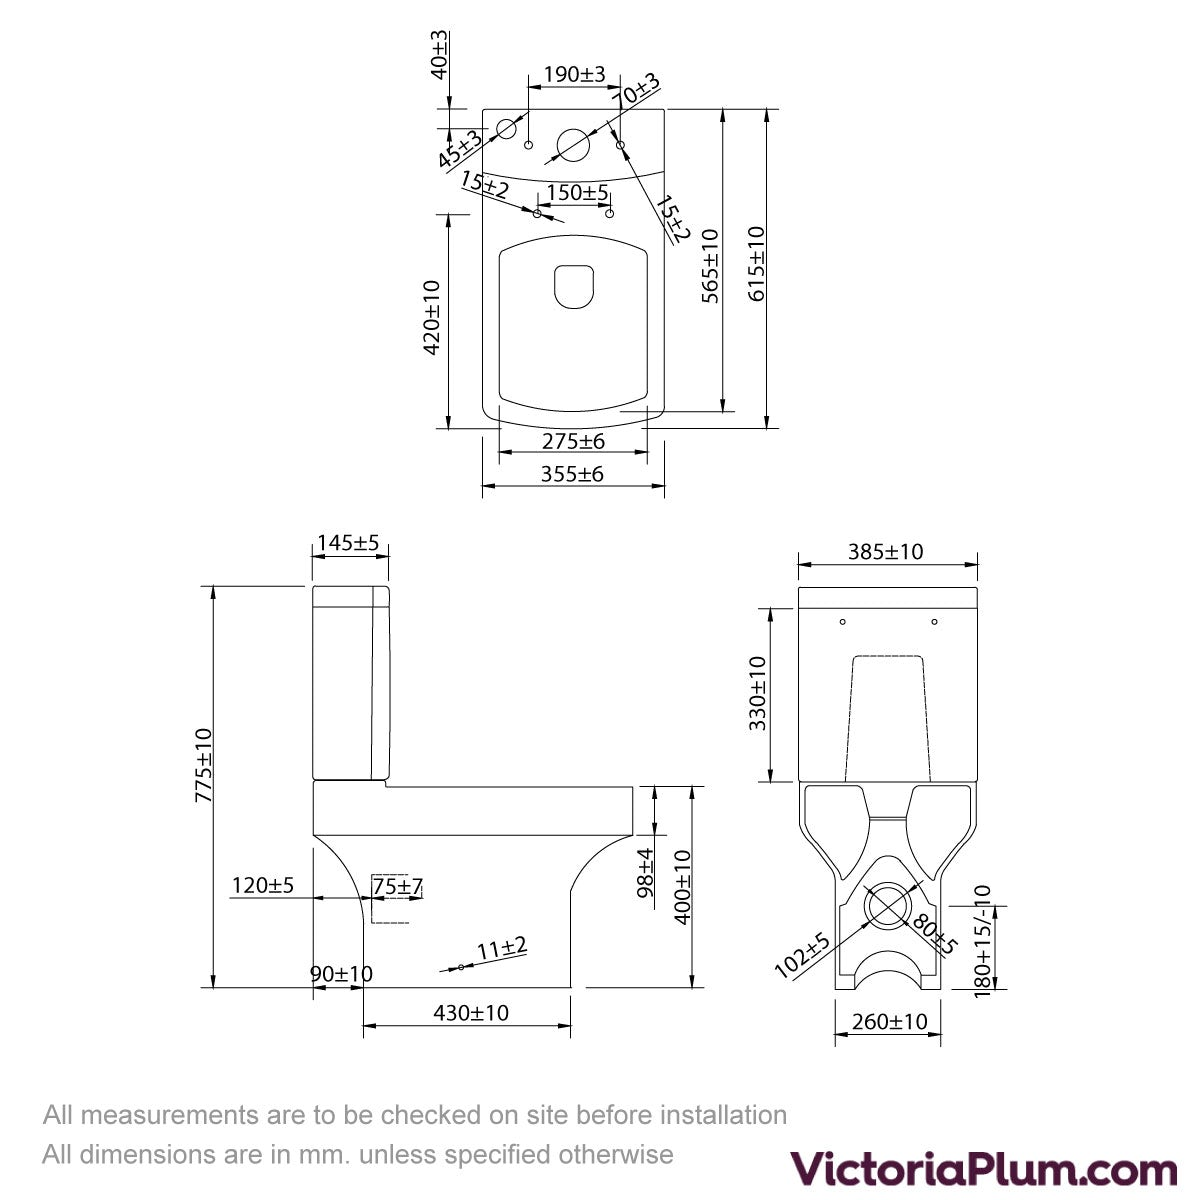 Dimensions for Vermont close coupled toilet inc soft close seat